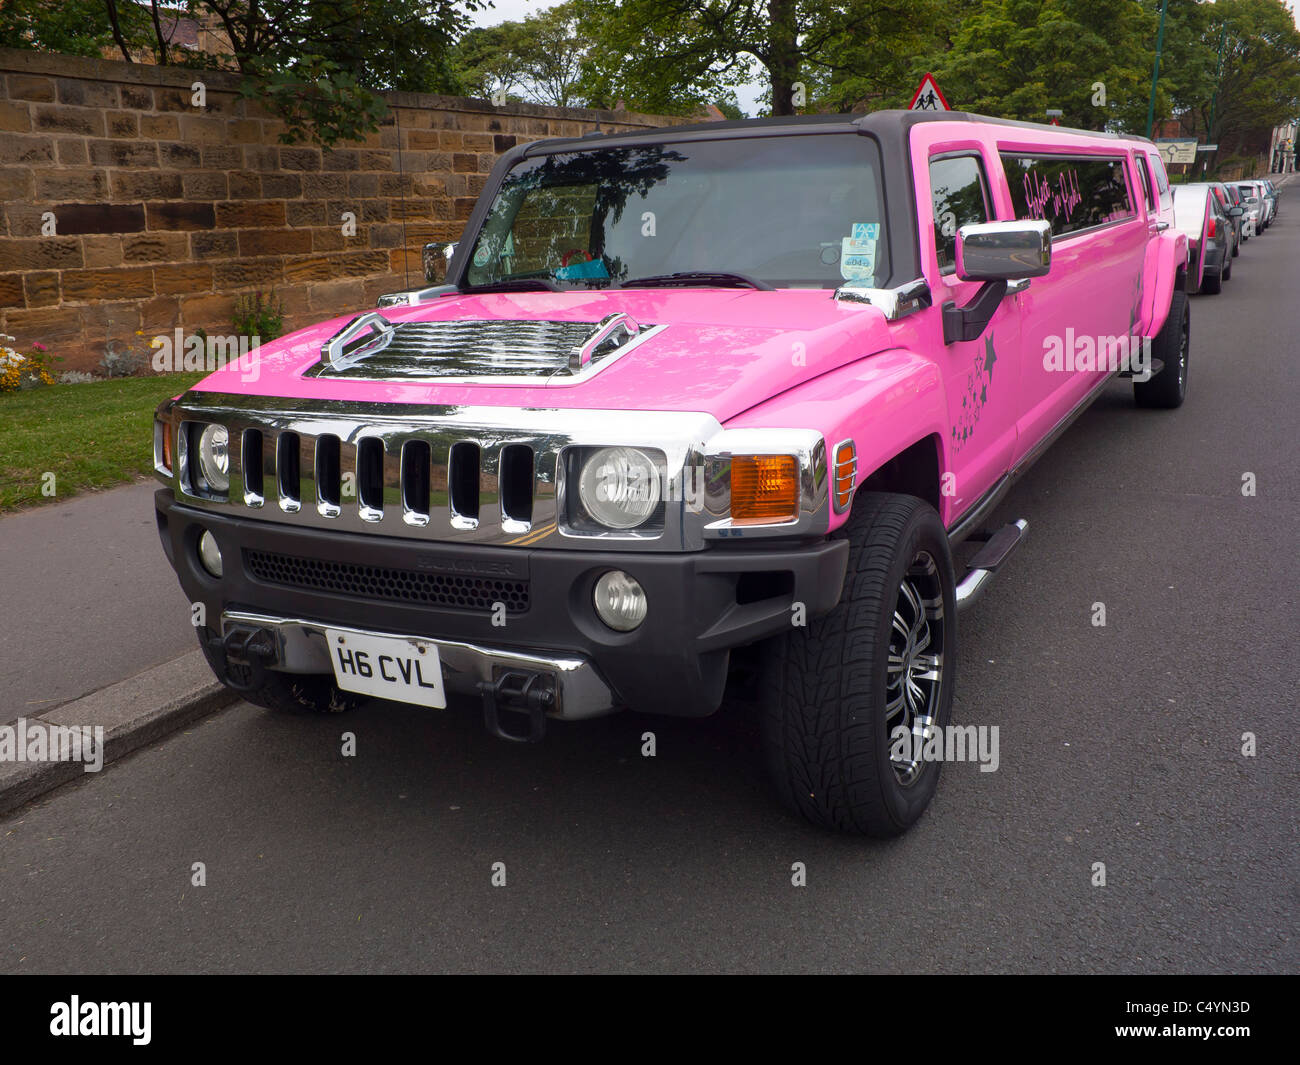 A bright pink Hummer stretched limousine - Stock Image